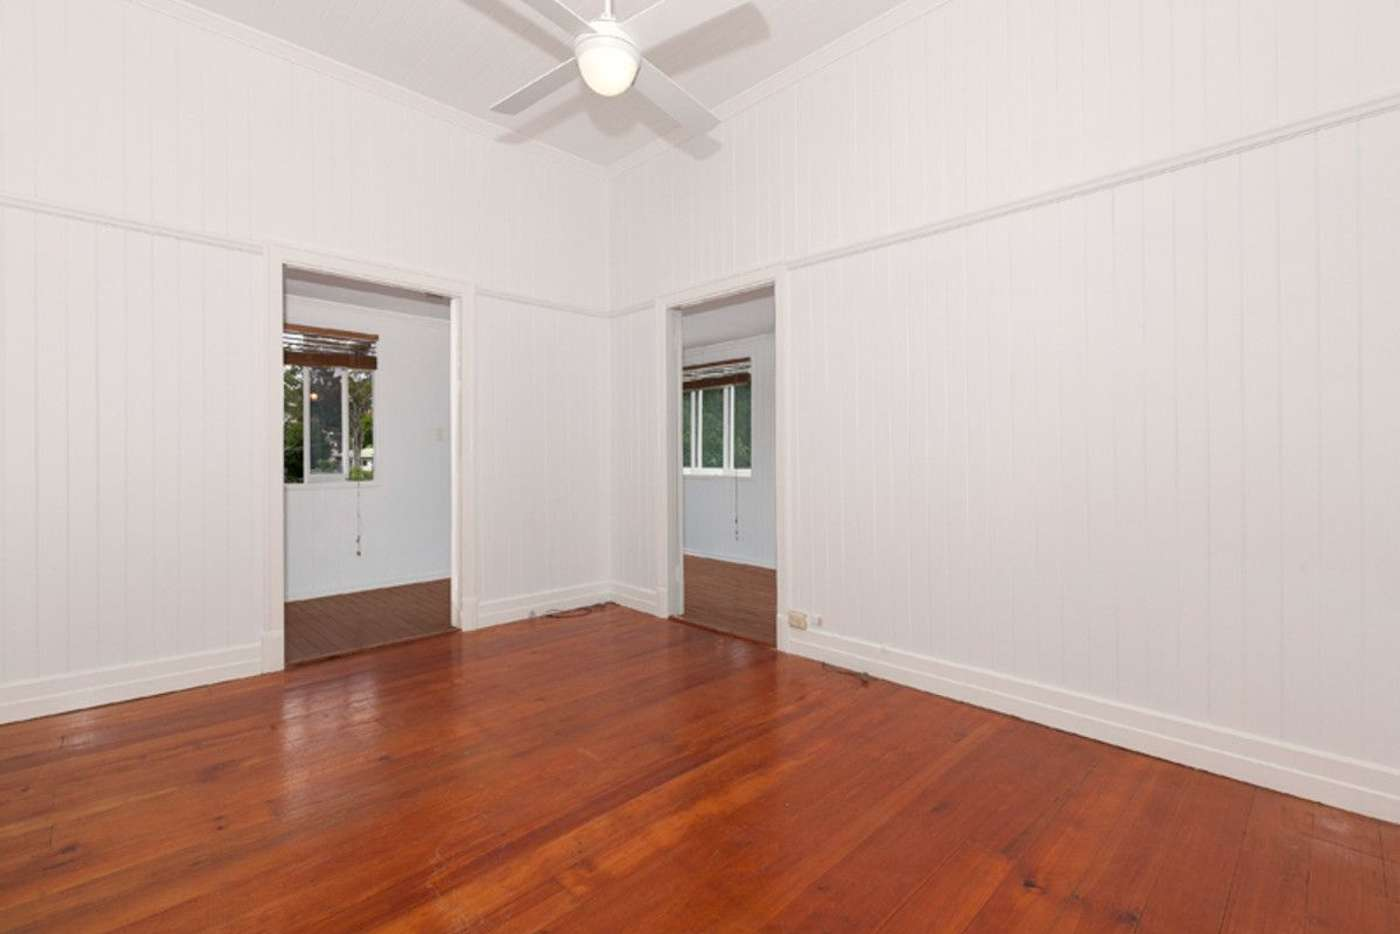 Sixth view of Homely house listing, 17 Orchard Street, Toowong QLD 4066